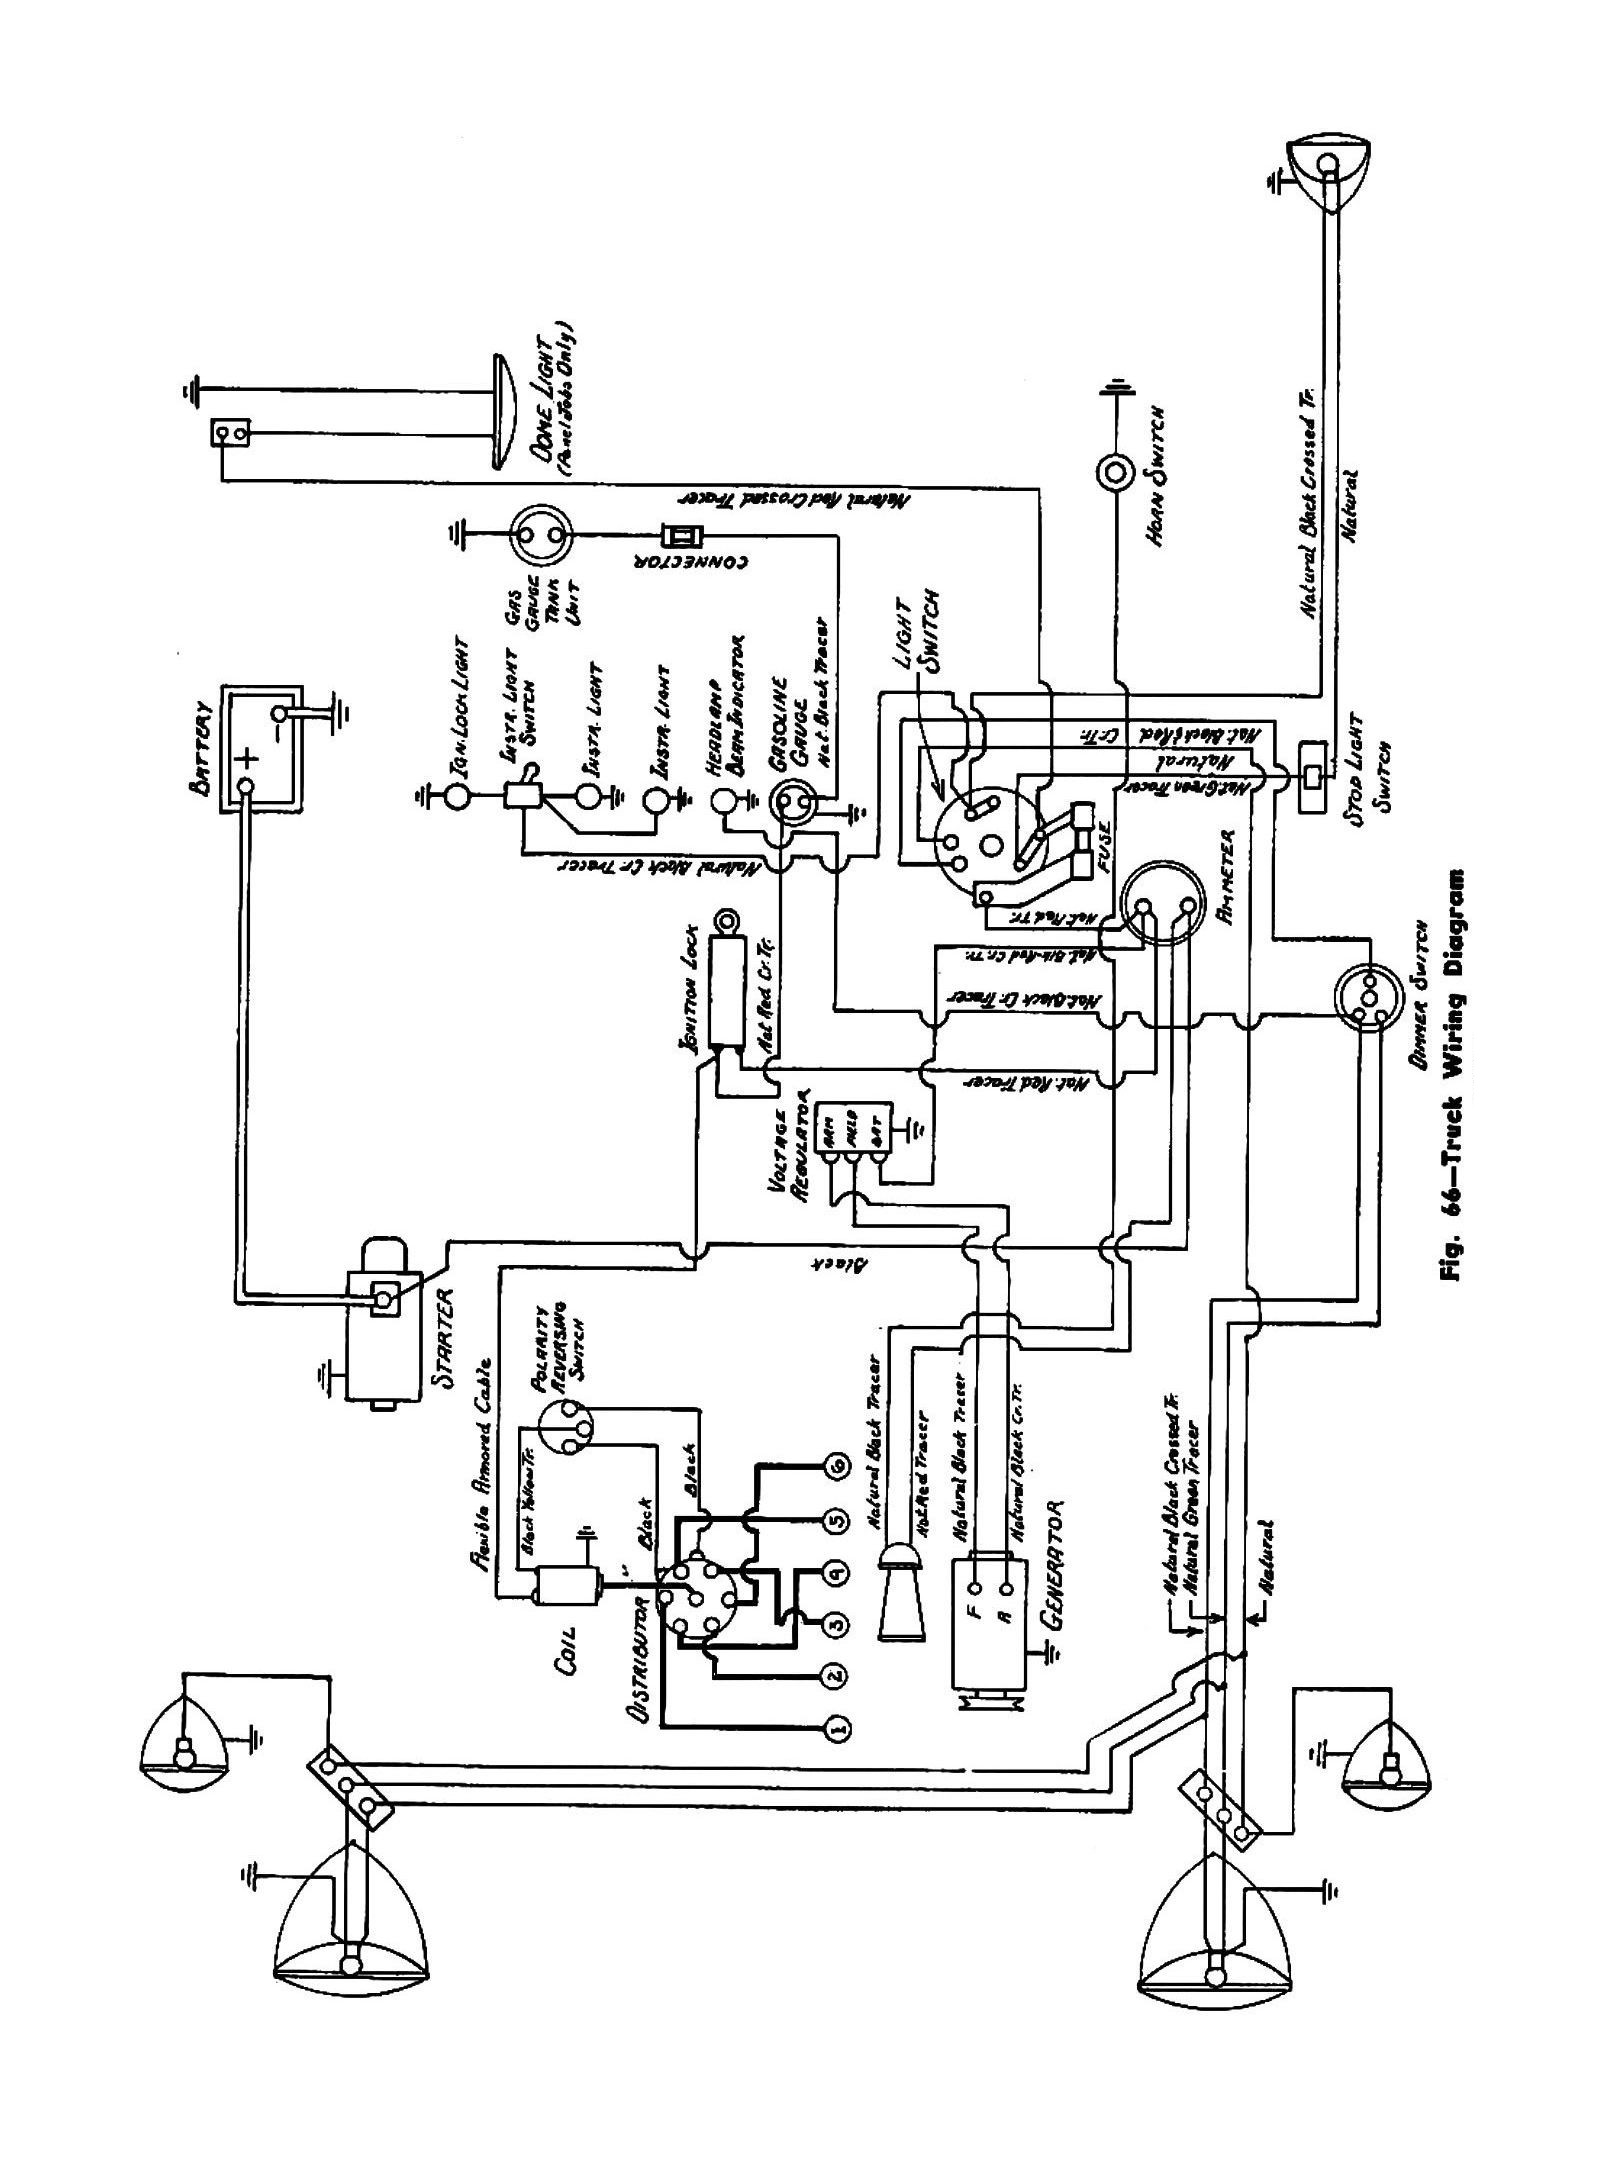 45truck 1968 chevy pickup wiring diagram wiring diagram simonand truck wiring harness at gsmportal.co